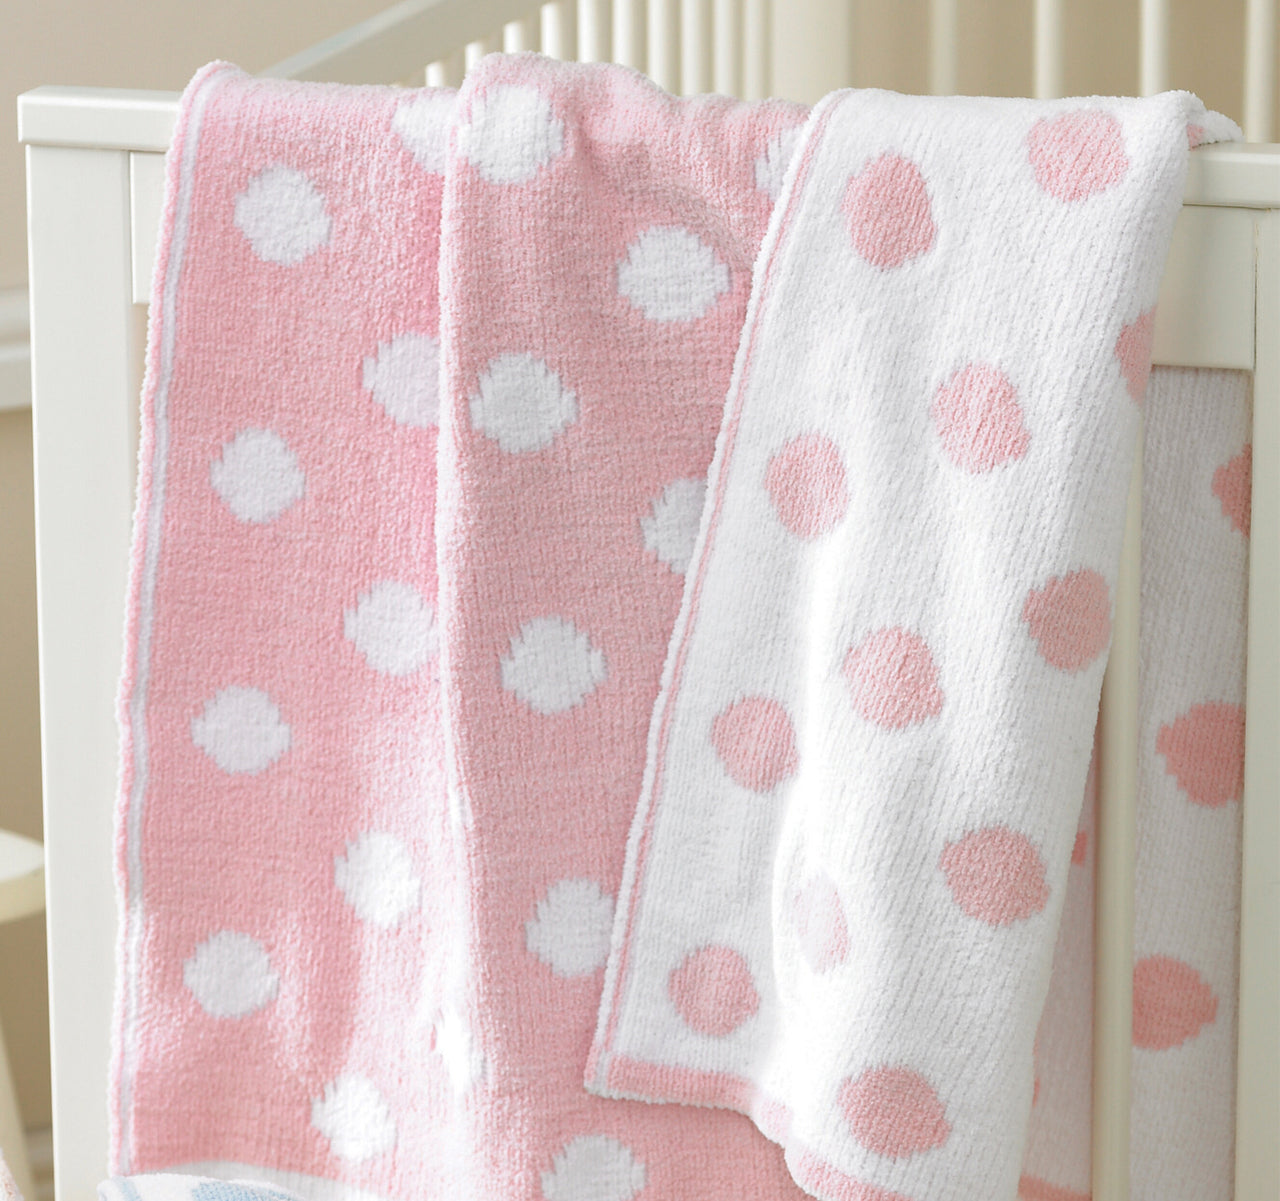 Super soft reversible spotted baby blanket in pink and white.  Perfect as a playmat or in the pram, young children will love to snuggle up in it too.  A great gift for a new born or baby shower.